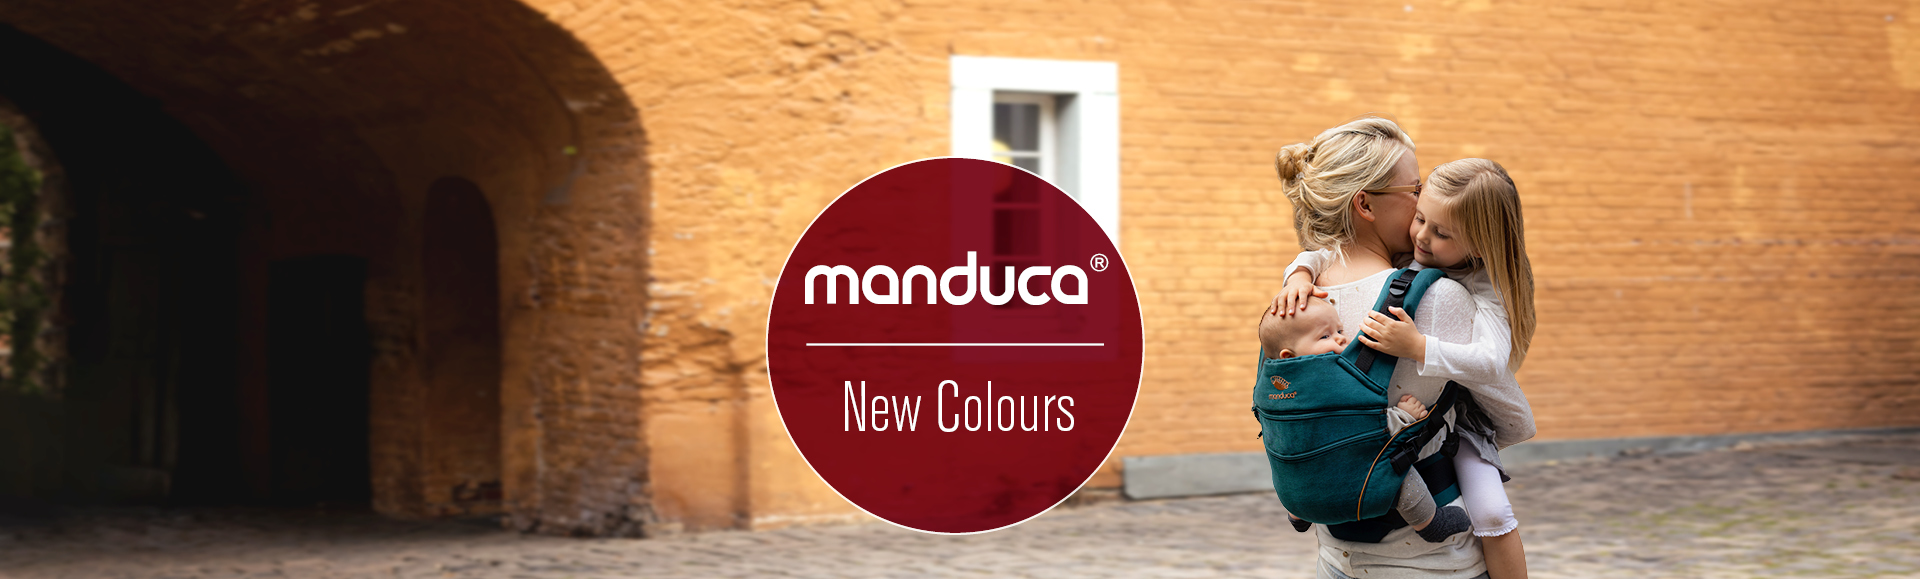 New Colours by manduca®